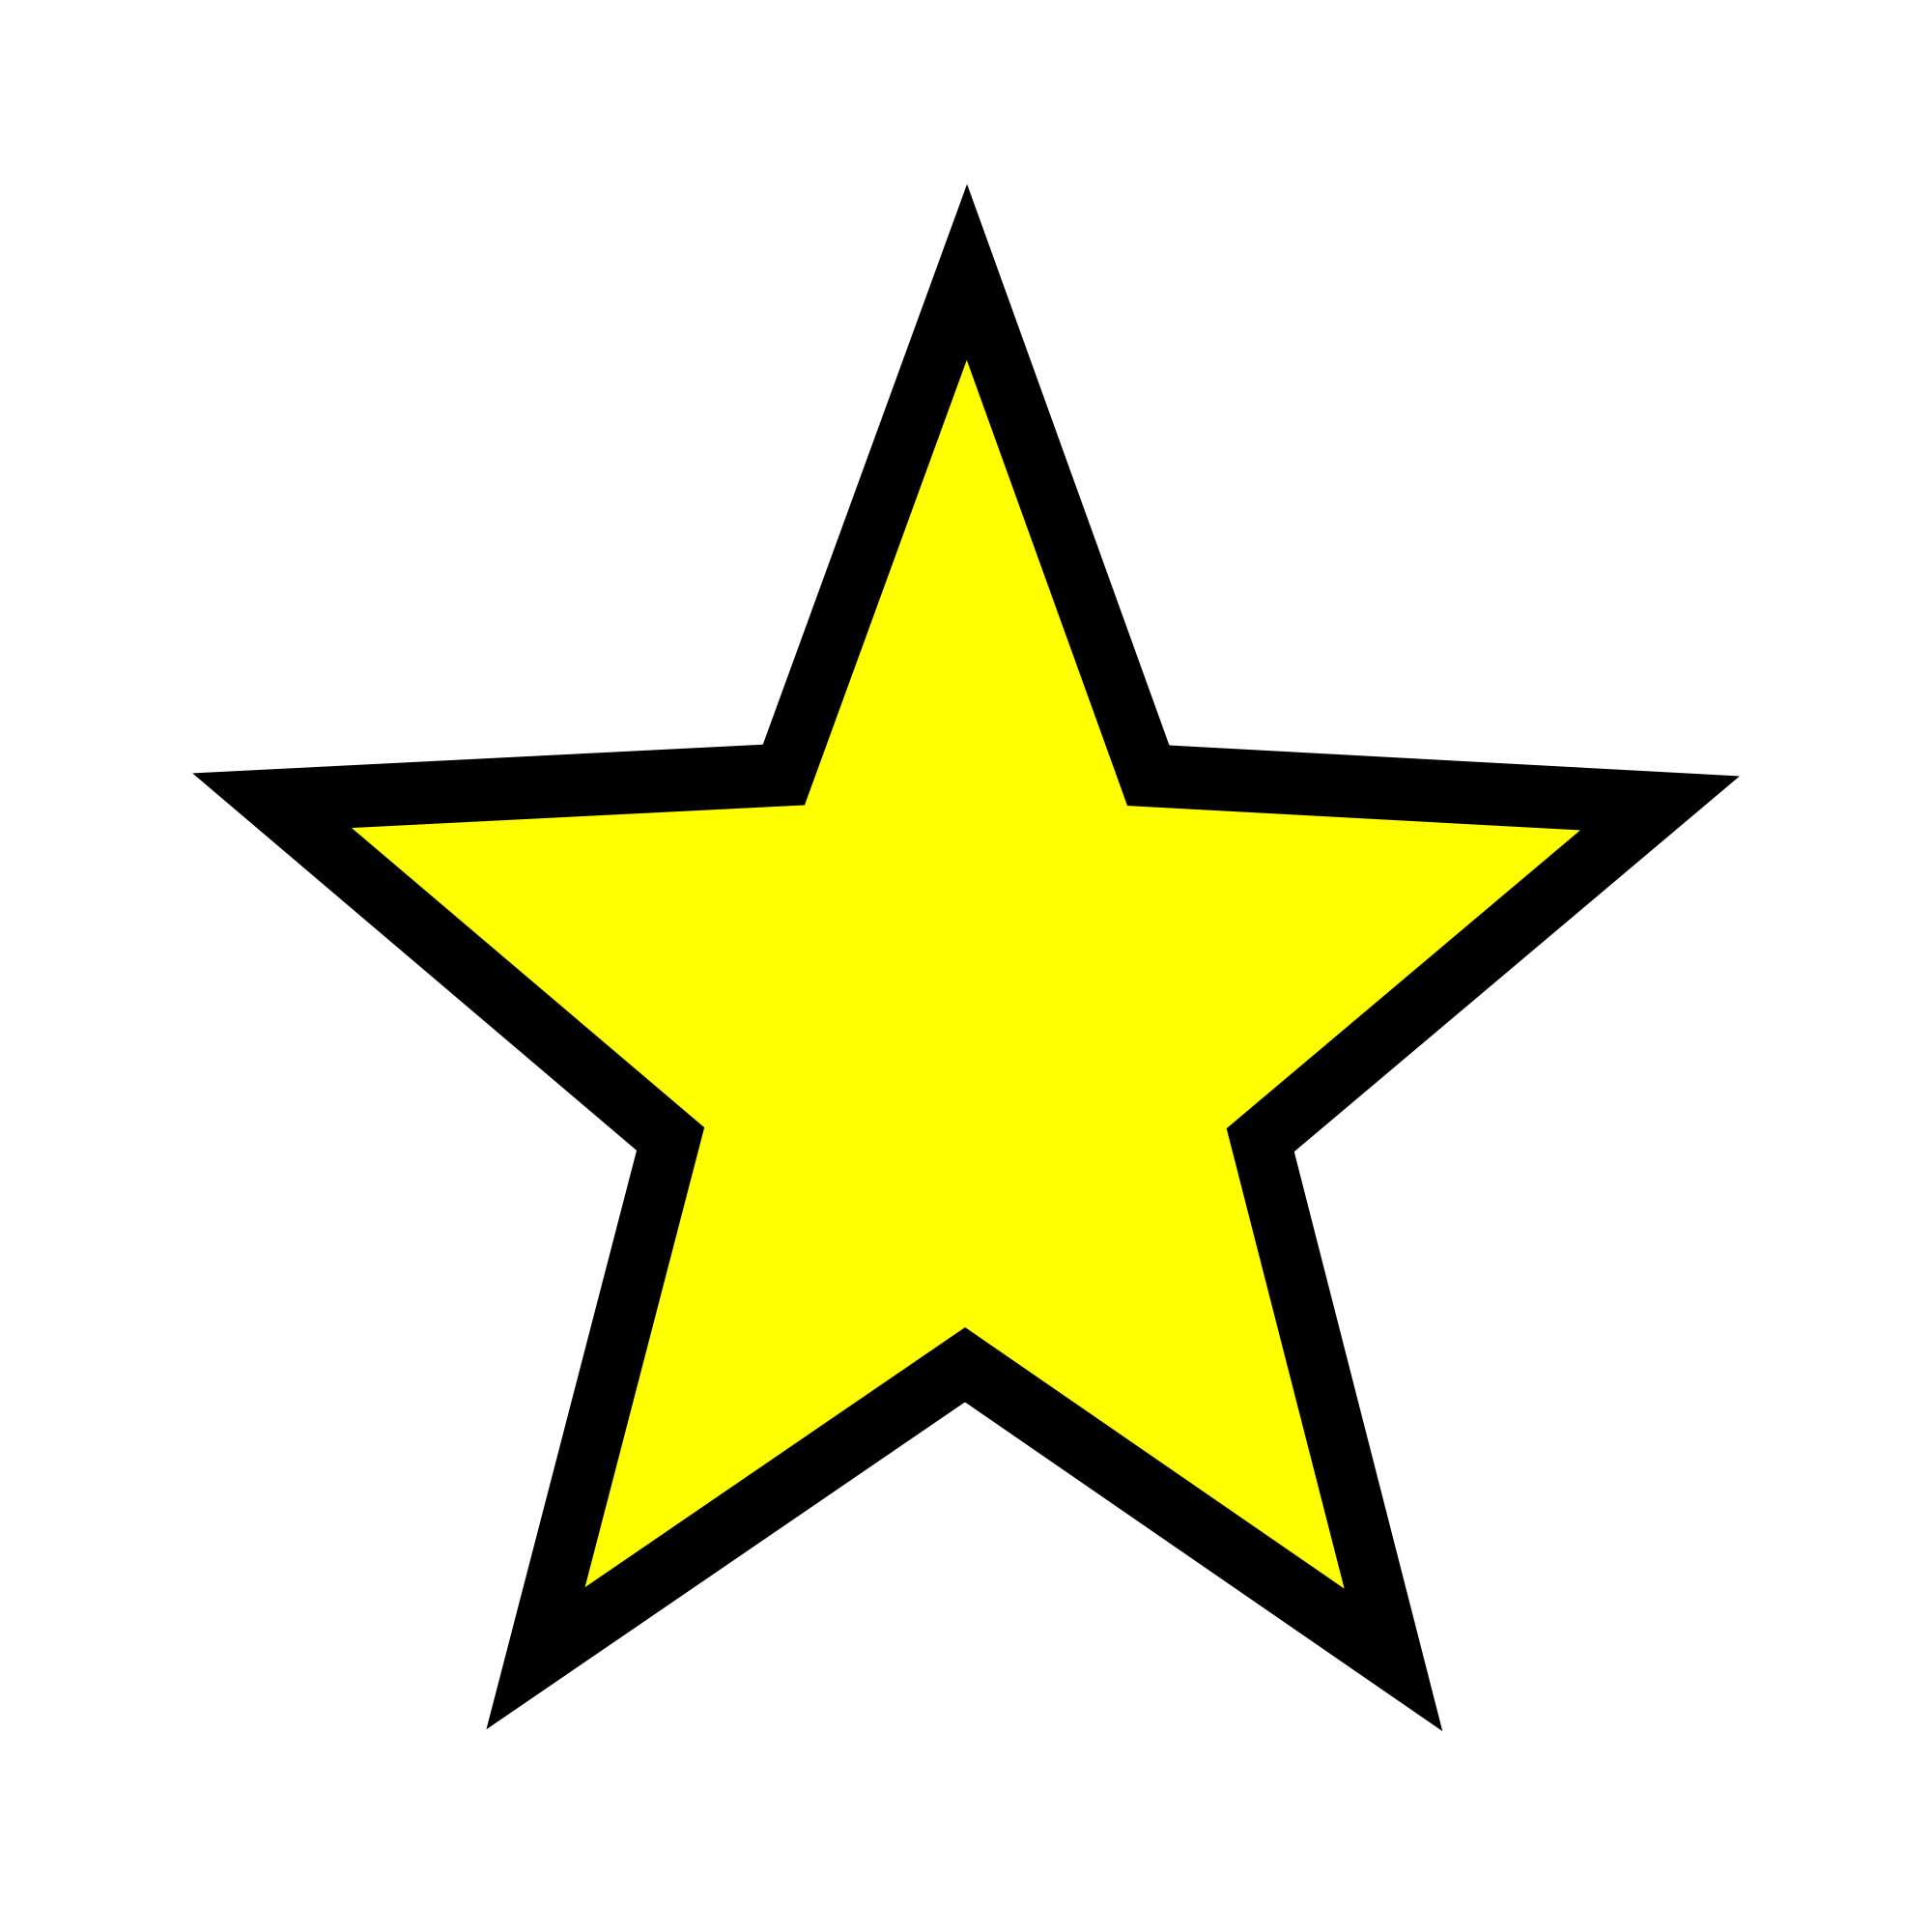 Yellow stars png. File full star svg